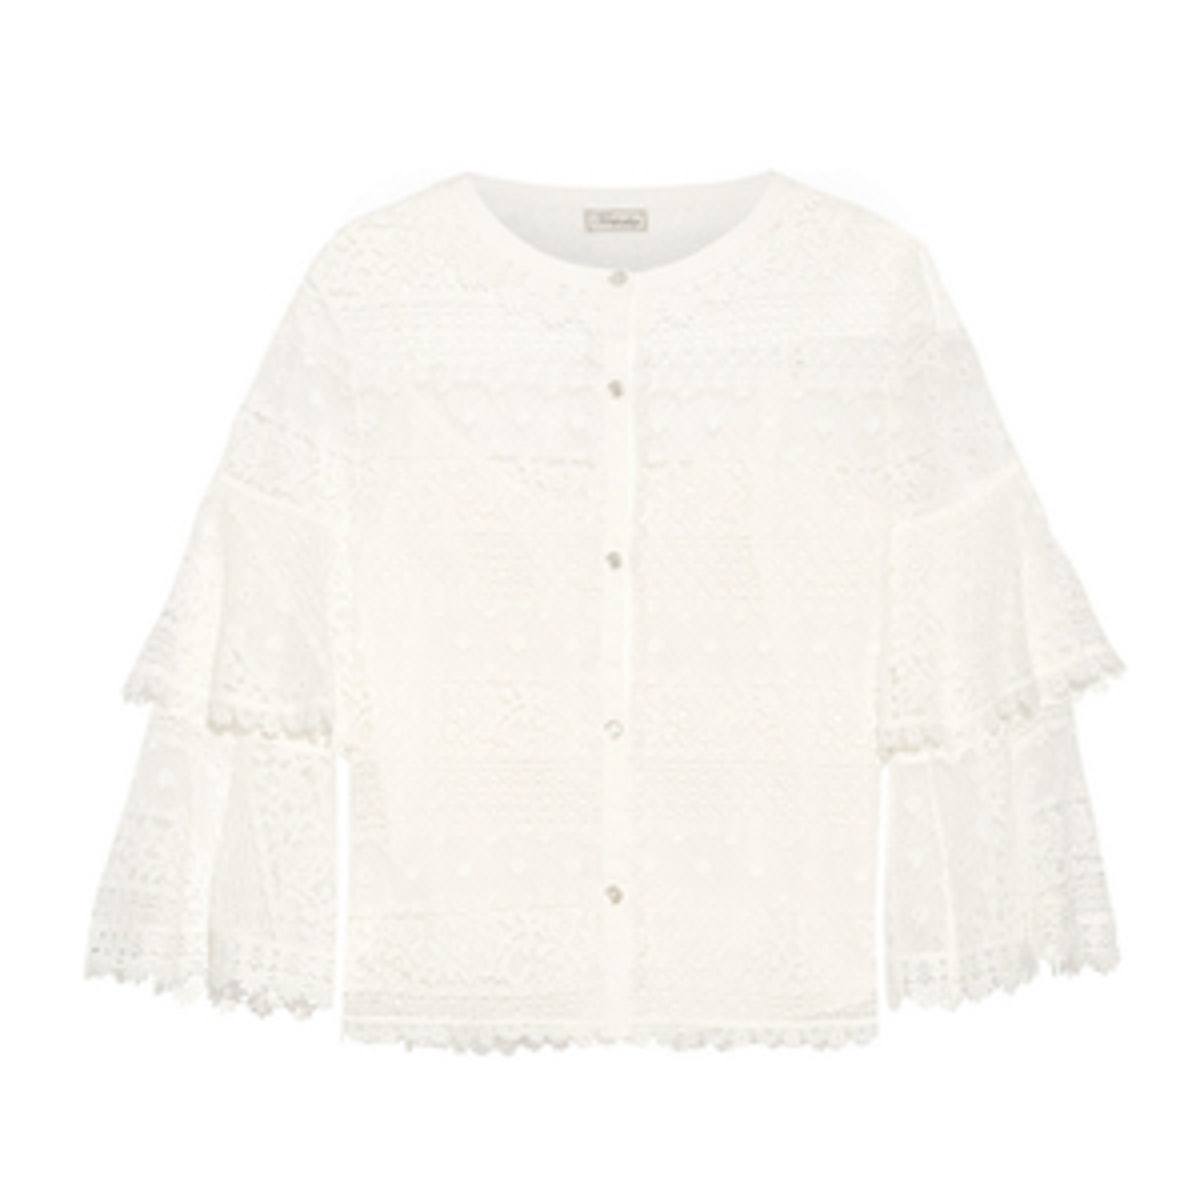 Desdemona Paneled Guipure Lace Top